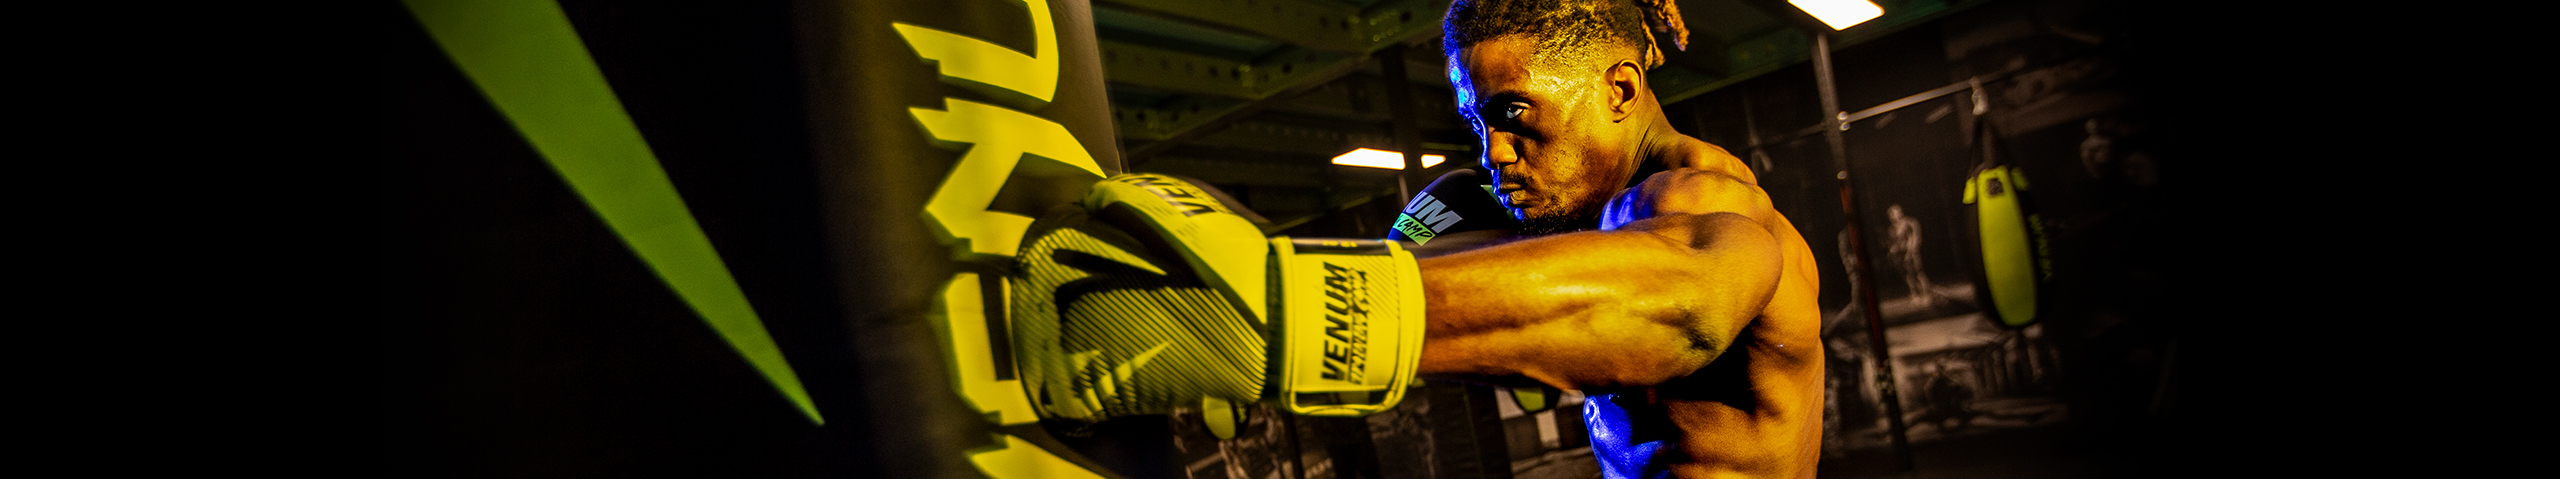 Venum Gloves - Venum.com Europe